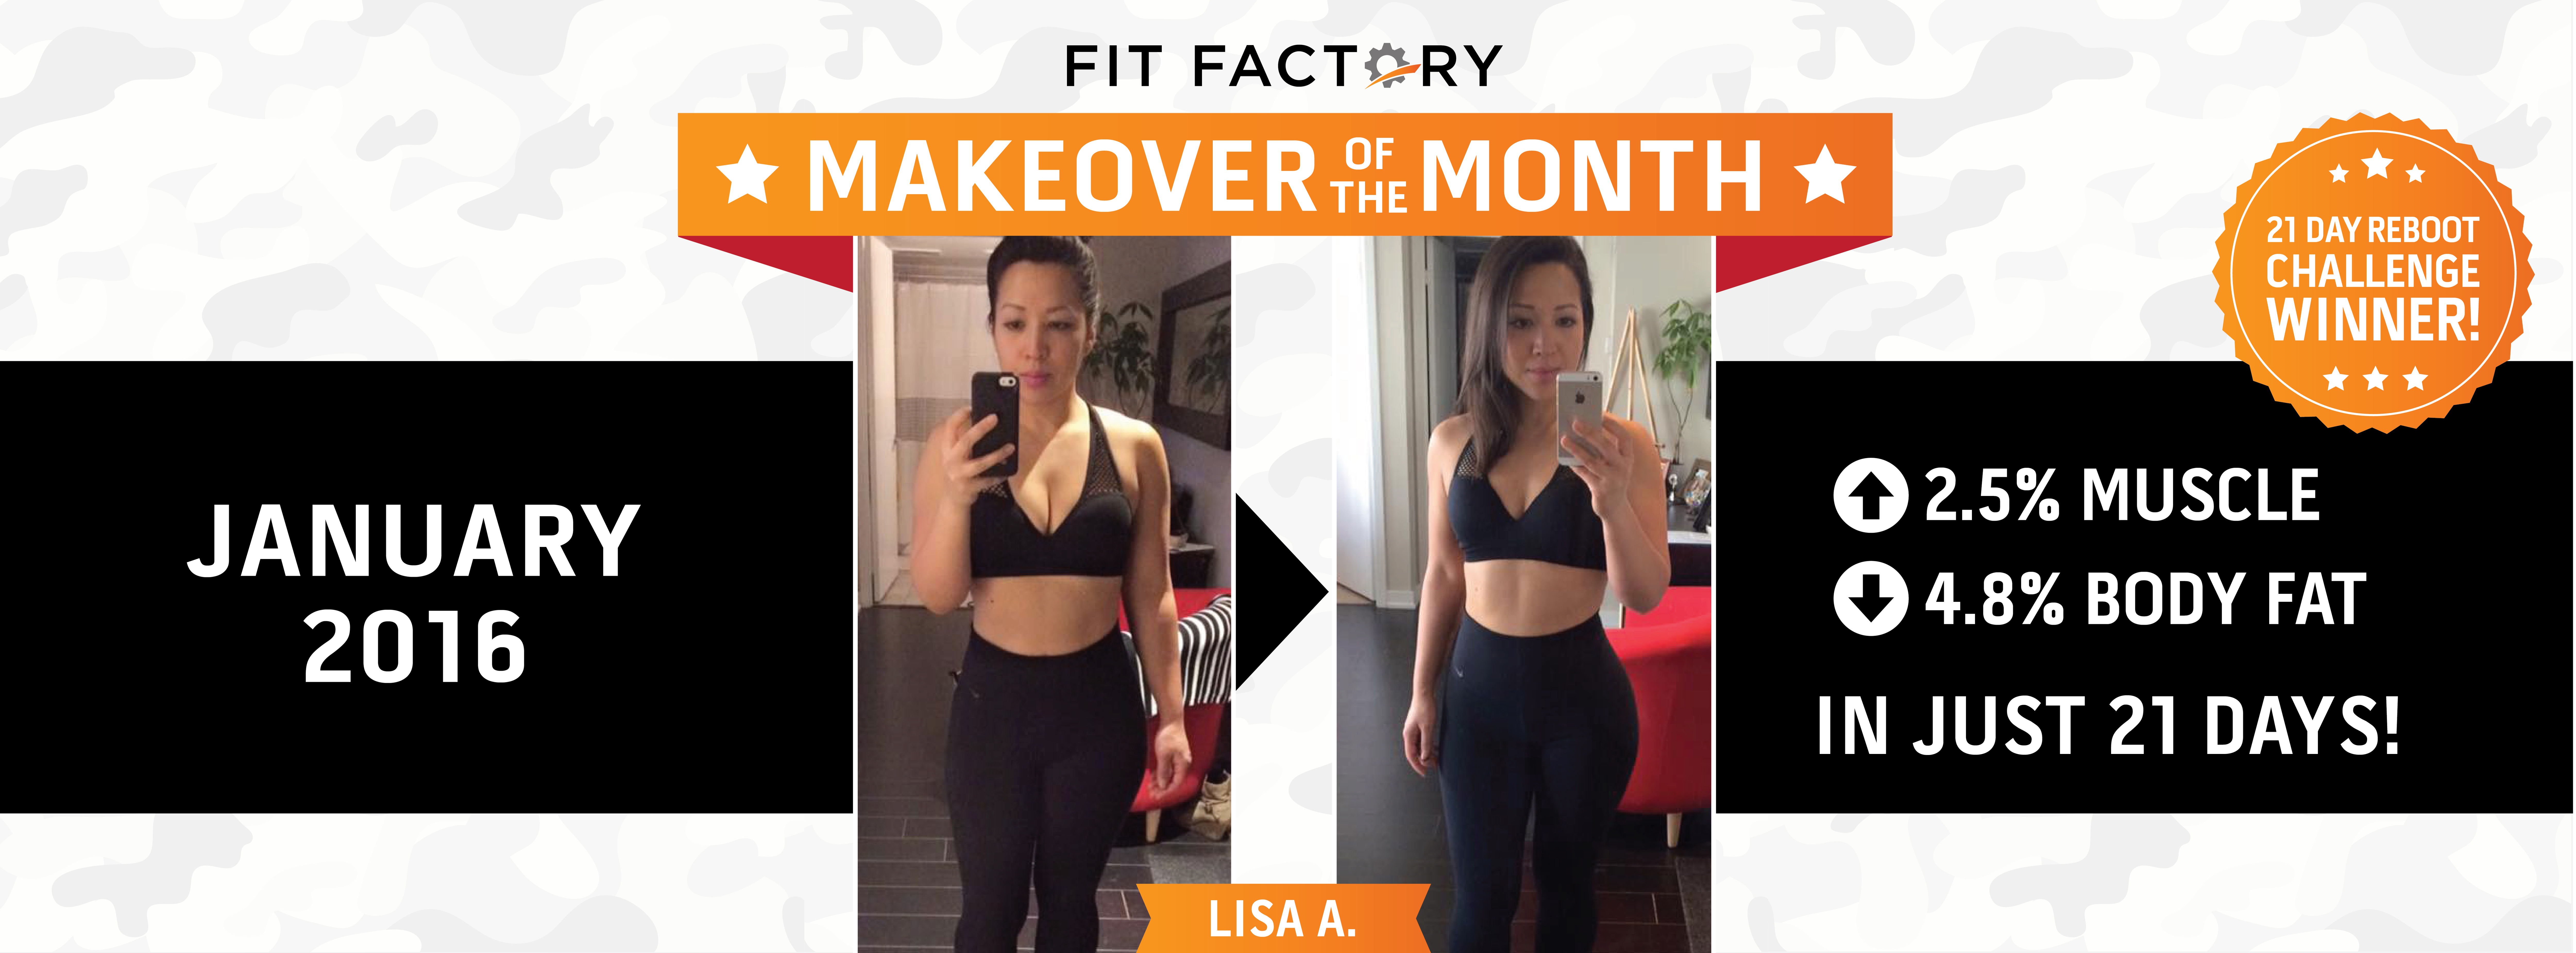 Jan2016makeover-final_FBcoverphoto